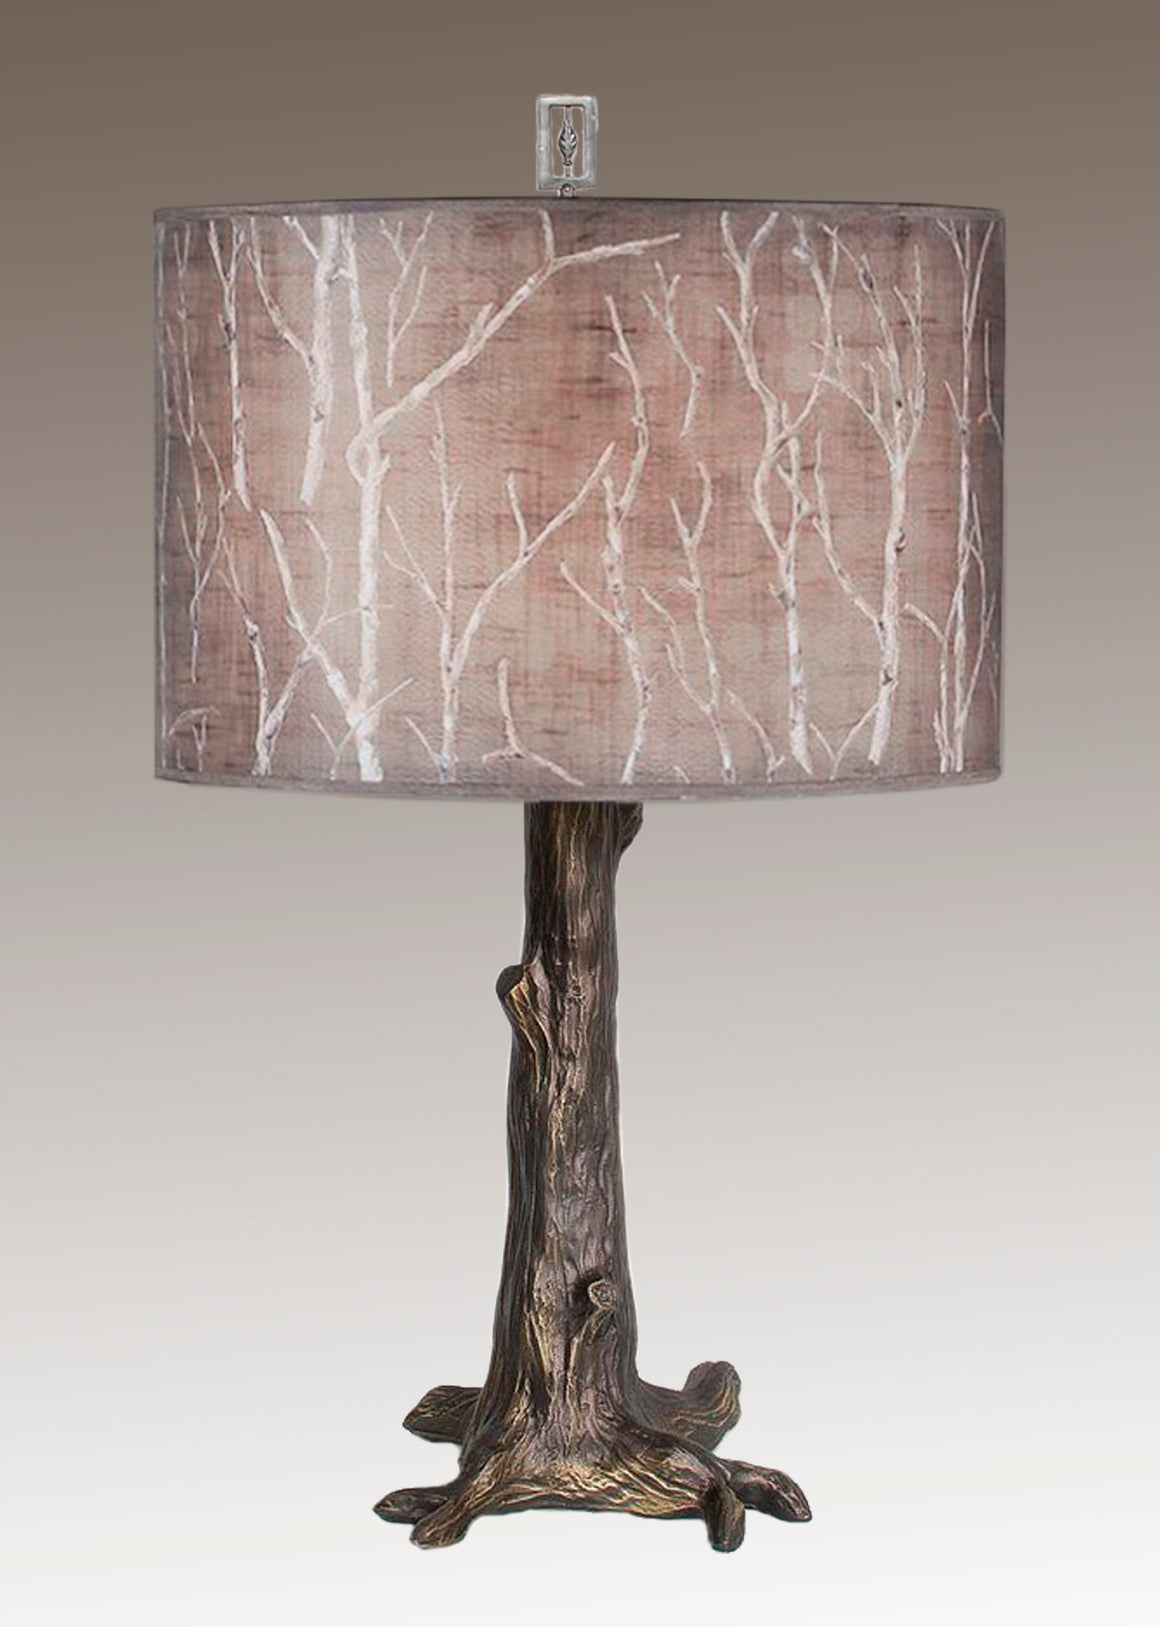 Bronze Tree Table Lamp with Large Drum Shade in Twigs